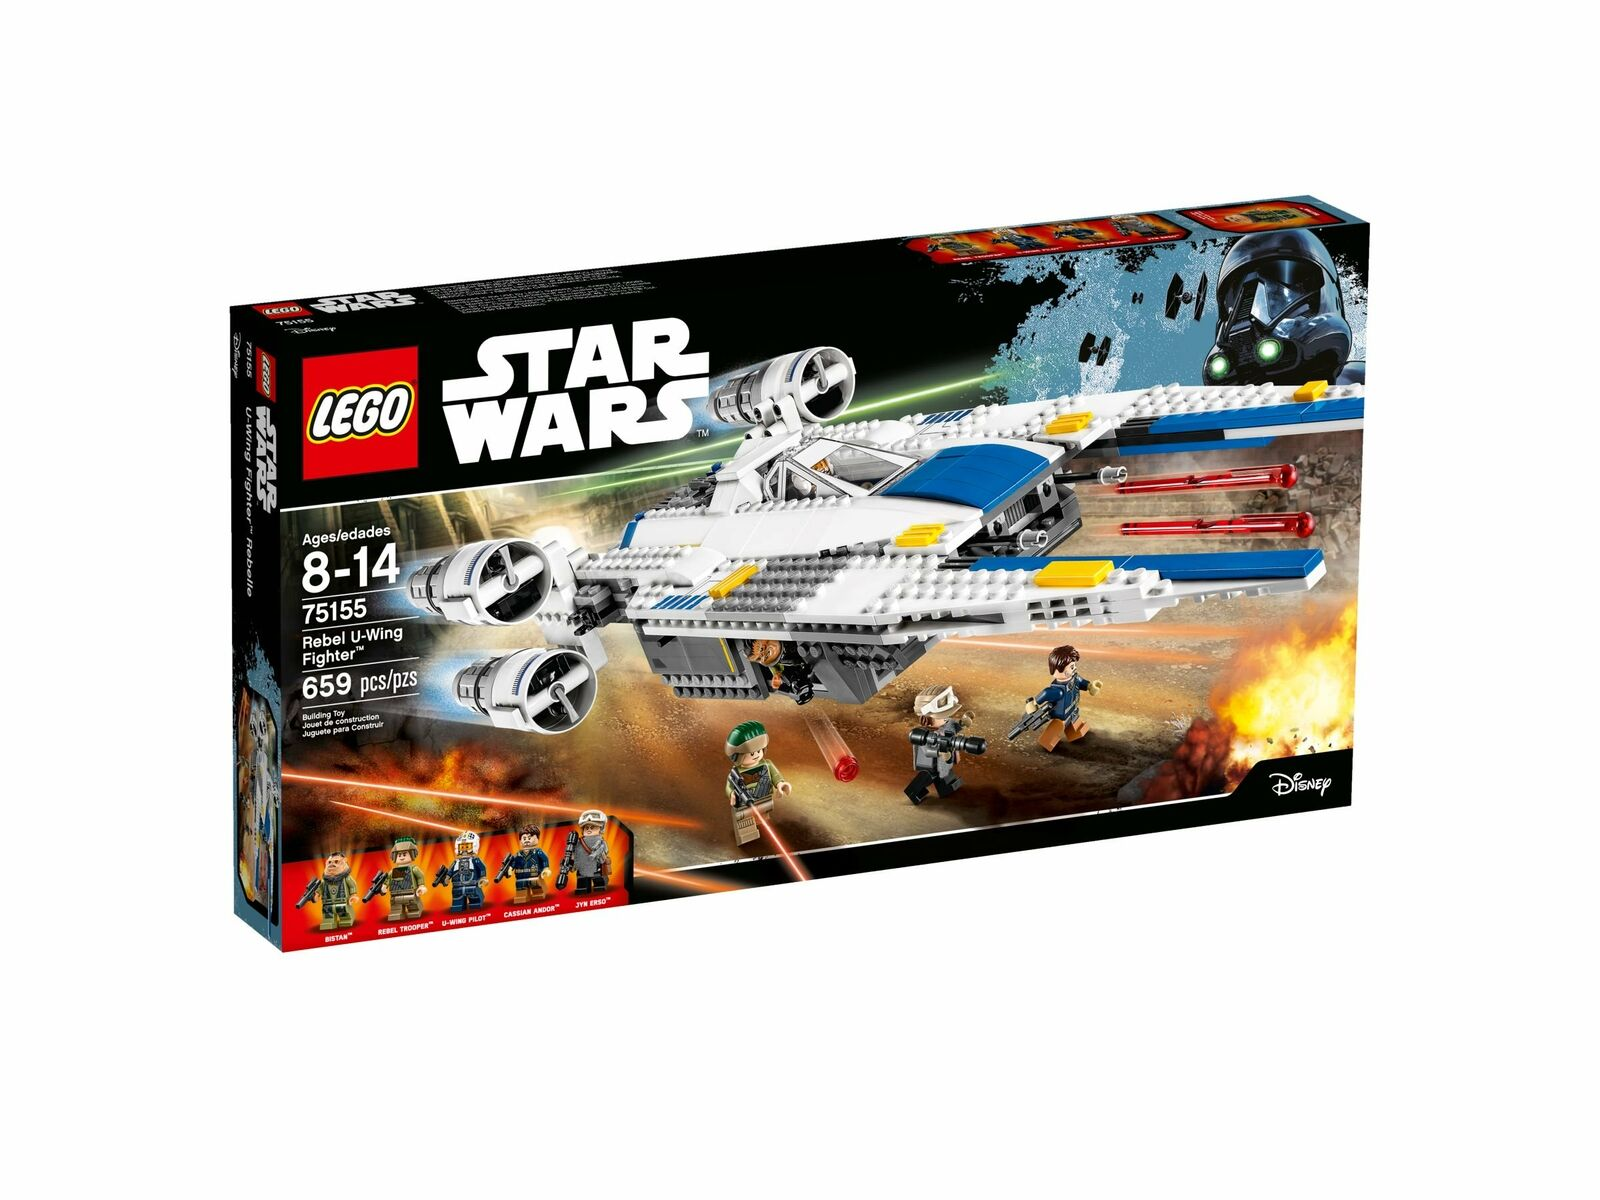 Lego 75155 Star Wars Rebel U-Wing Fighter, Rogue One